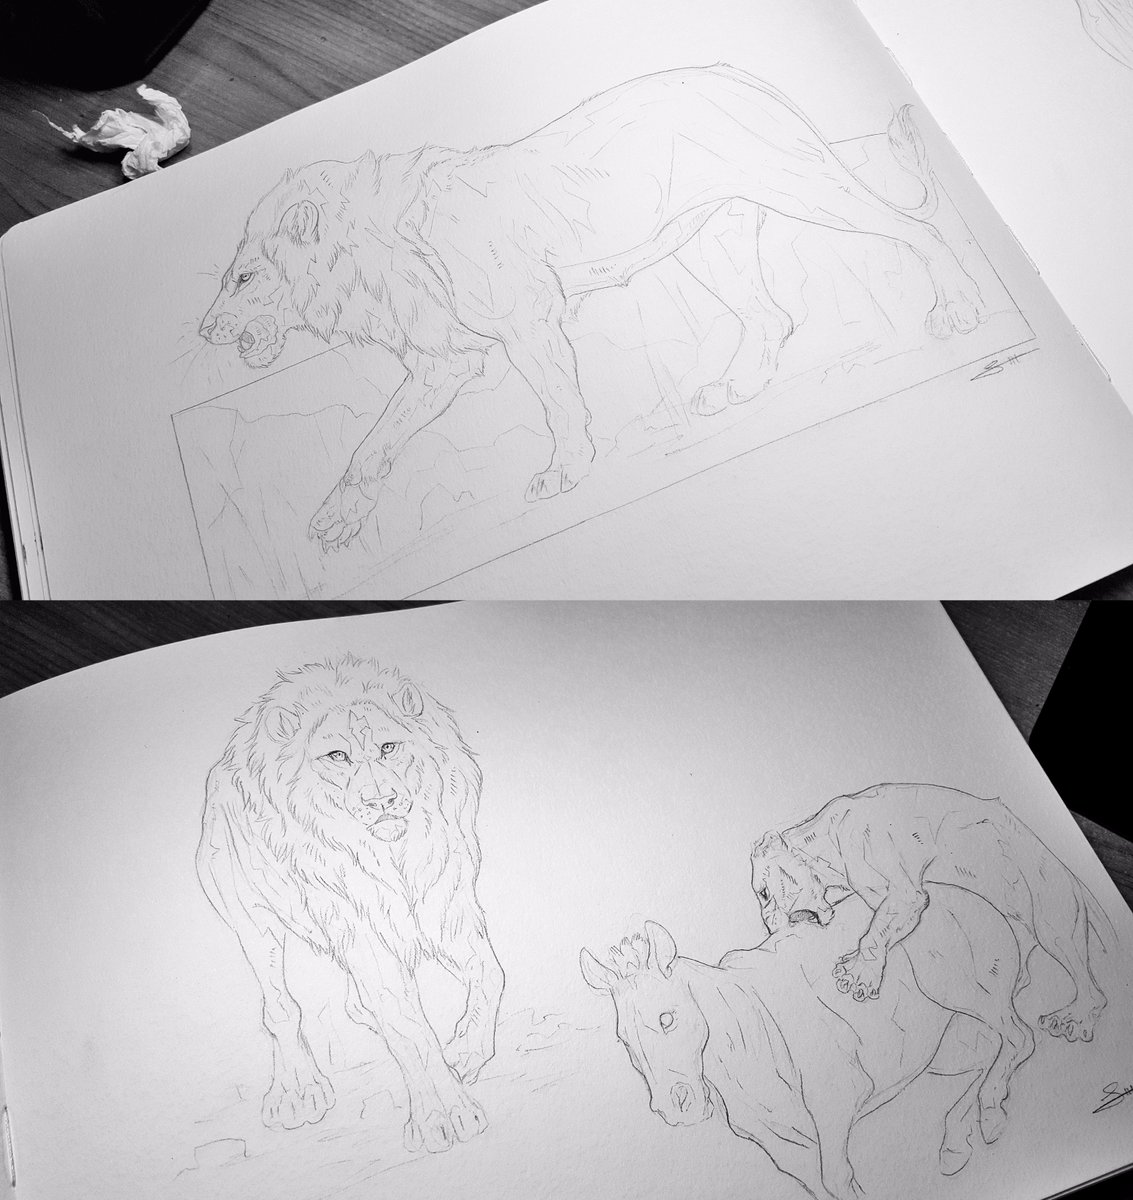 #lion #sketches.  Fancied studying some lions this morning.  Give me your biggest roar!<br>http://pic.twitter.com/WsO2LnQPh8